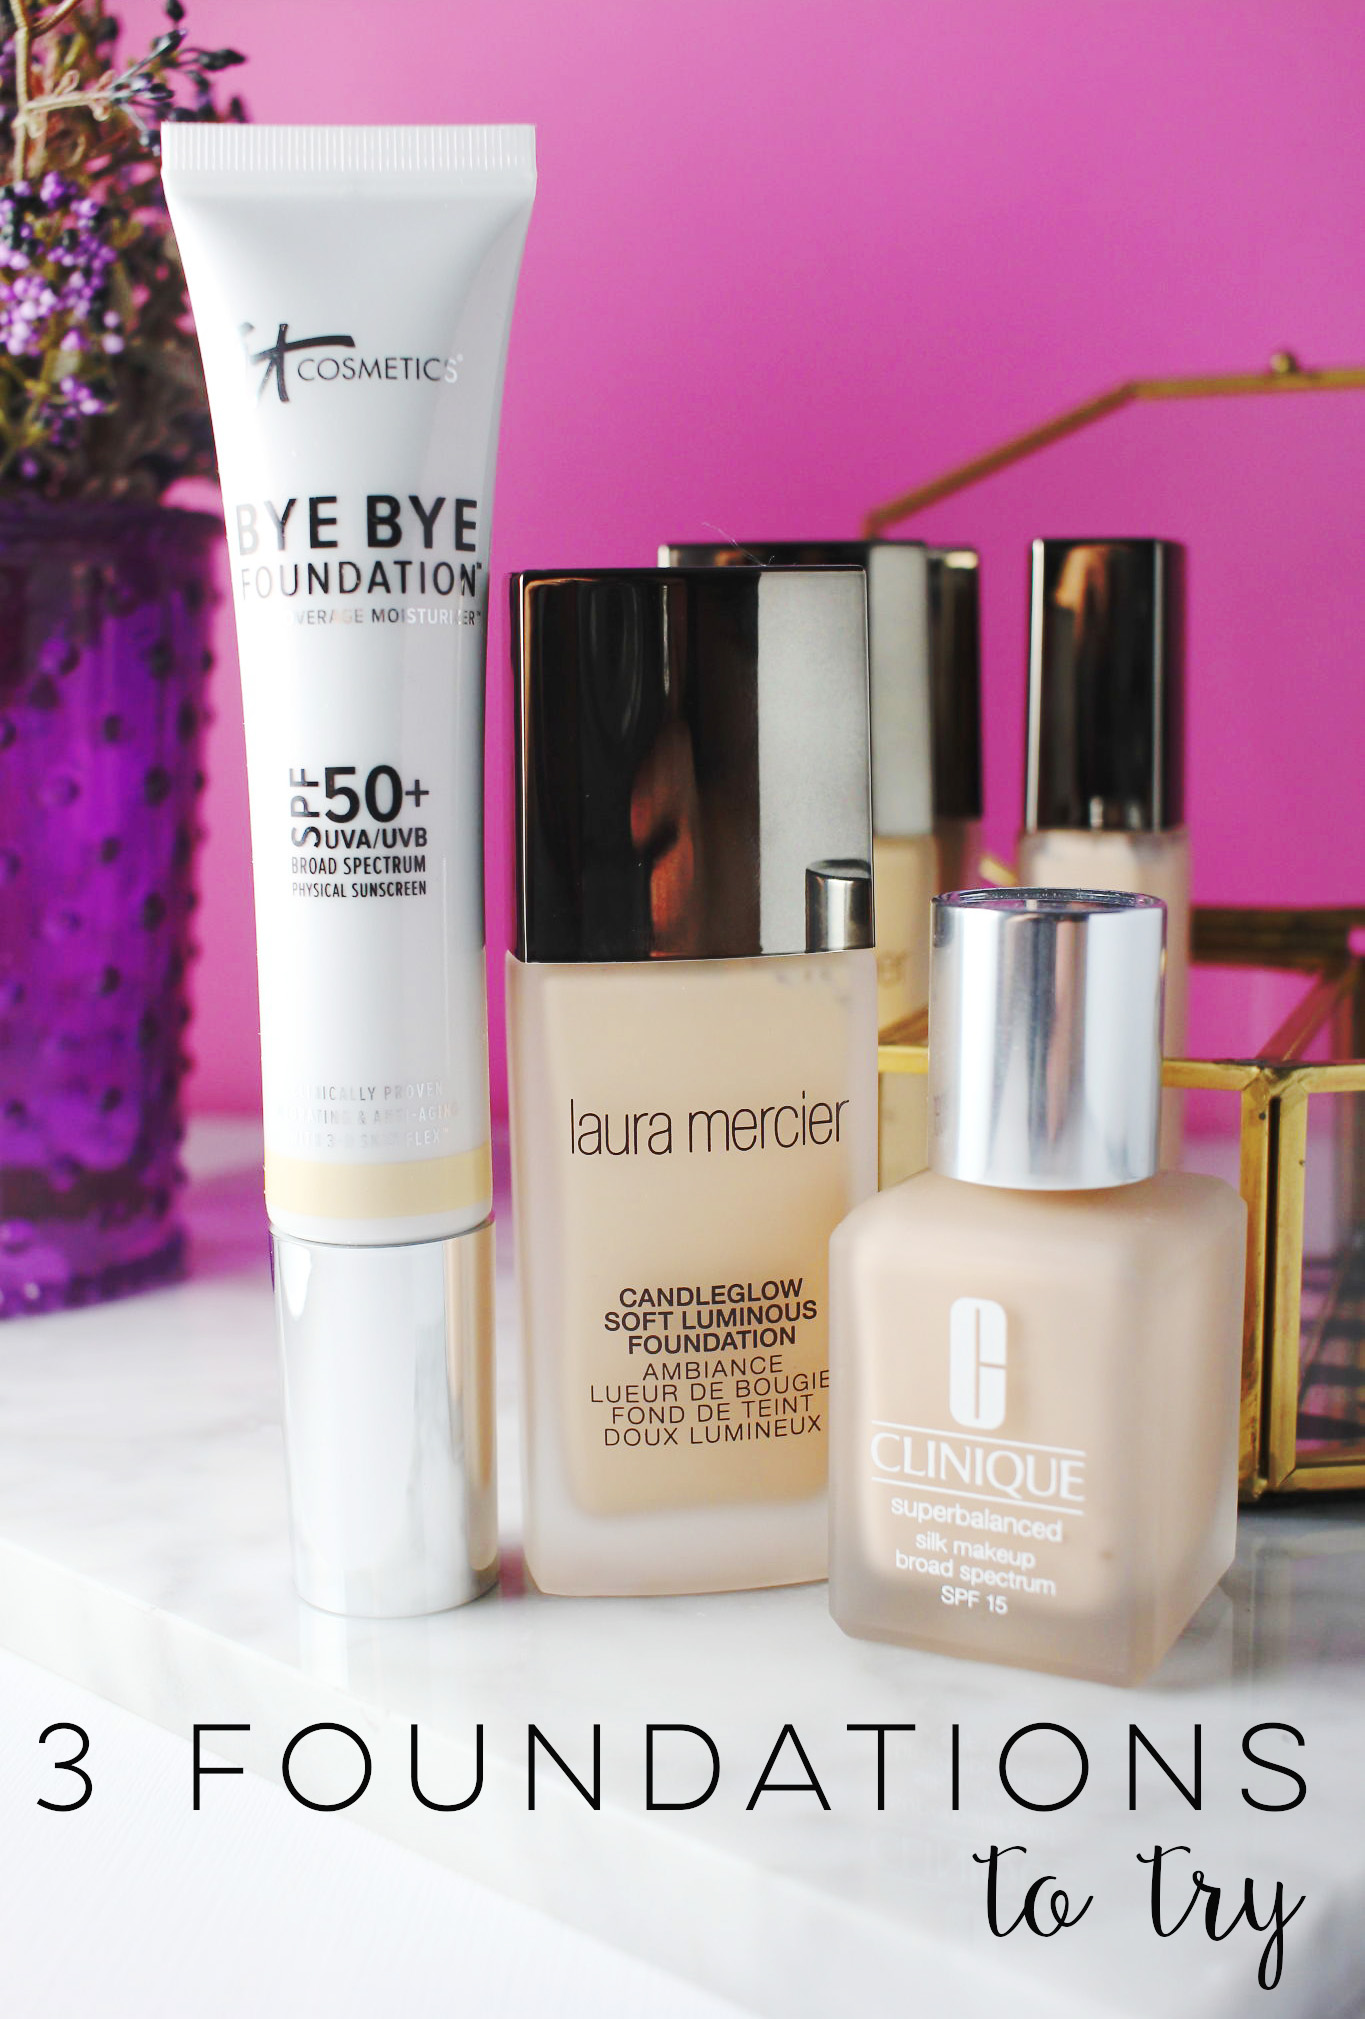 3 Foundations to Try- It Cosmetics Bye Bye Foundation, Laura Mercier Candleglow Soft Luminous Foundation, Clinique Superbalanced Silk, review